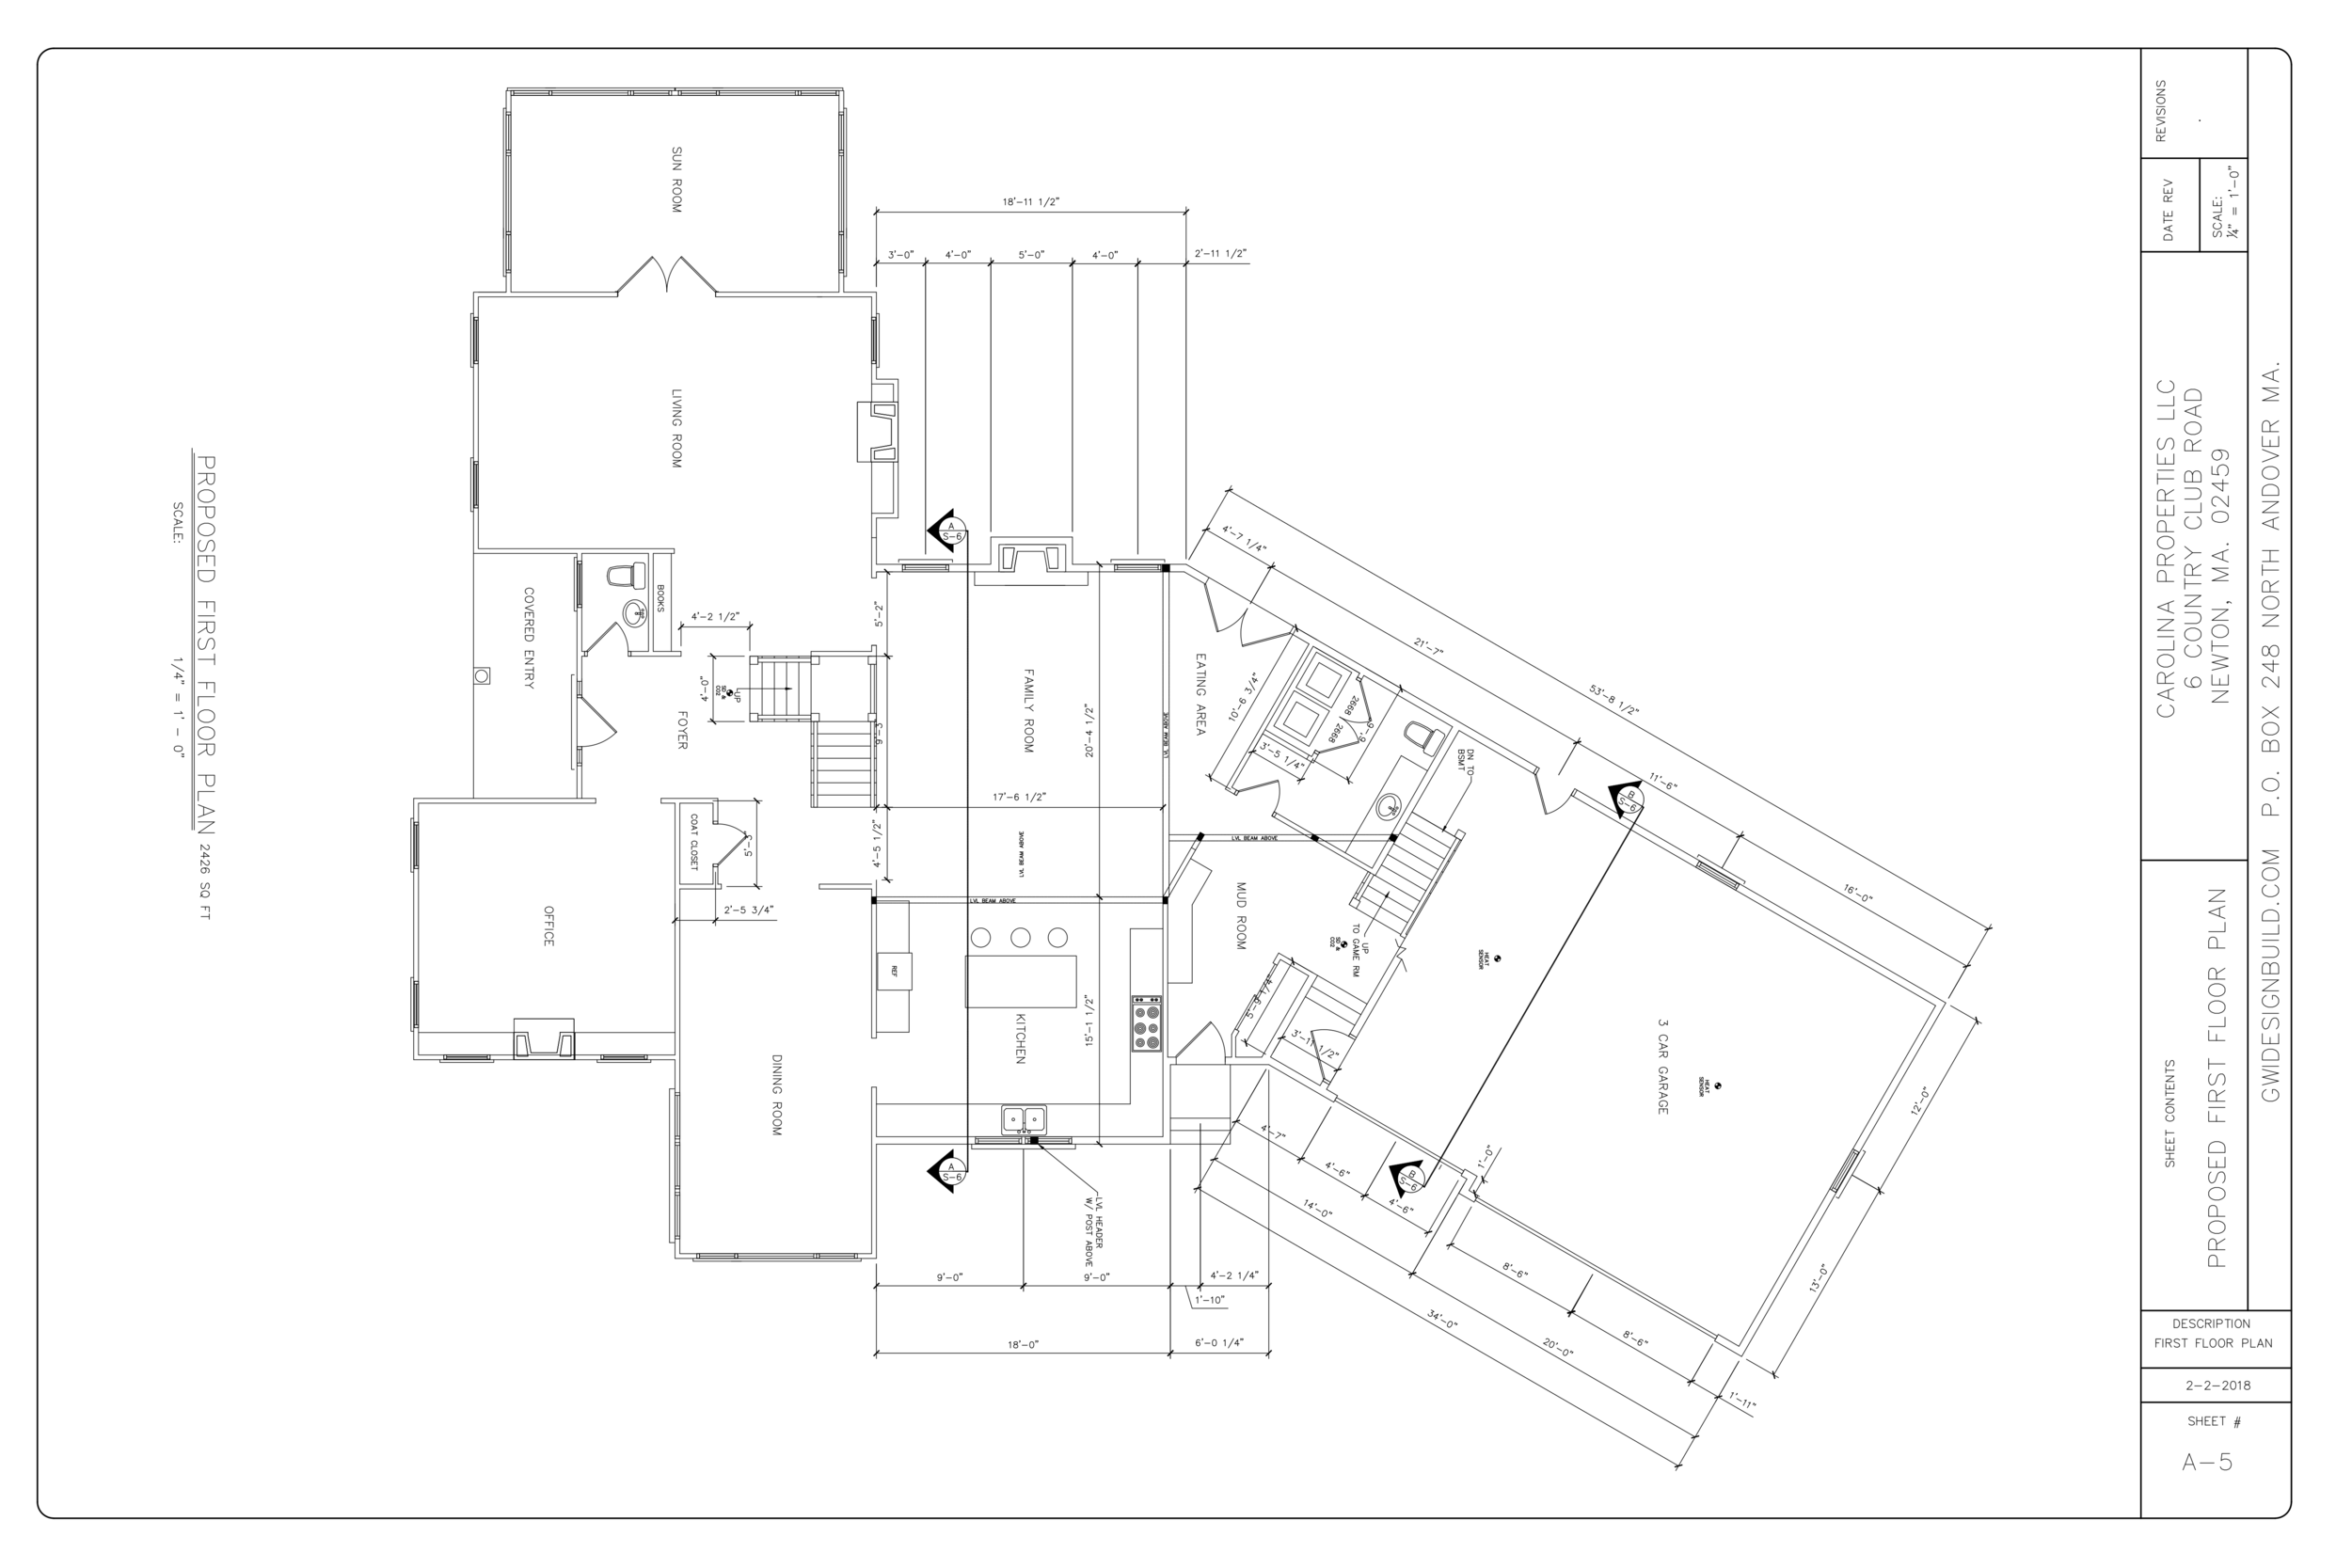 5-PROPOSED 1ST FLOOR.png